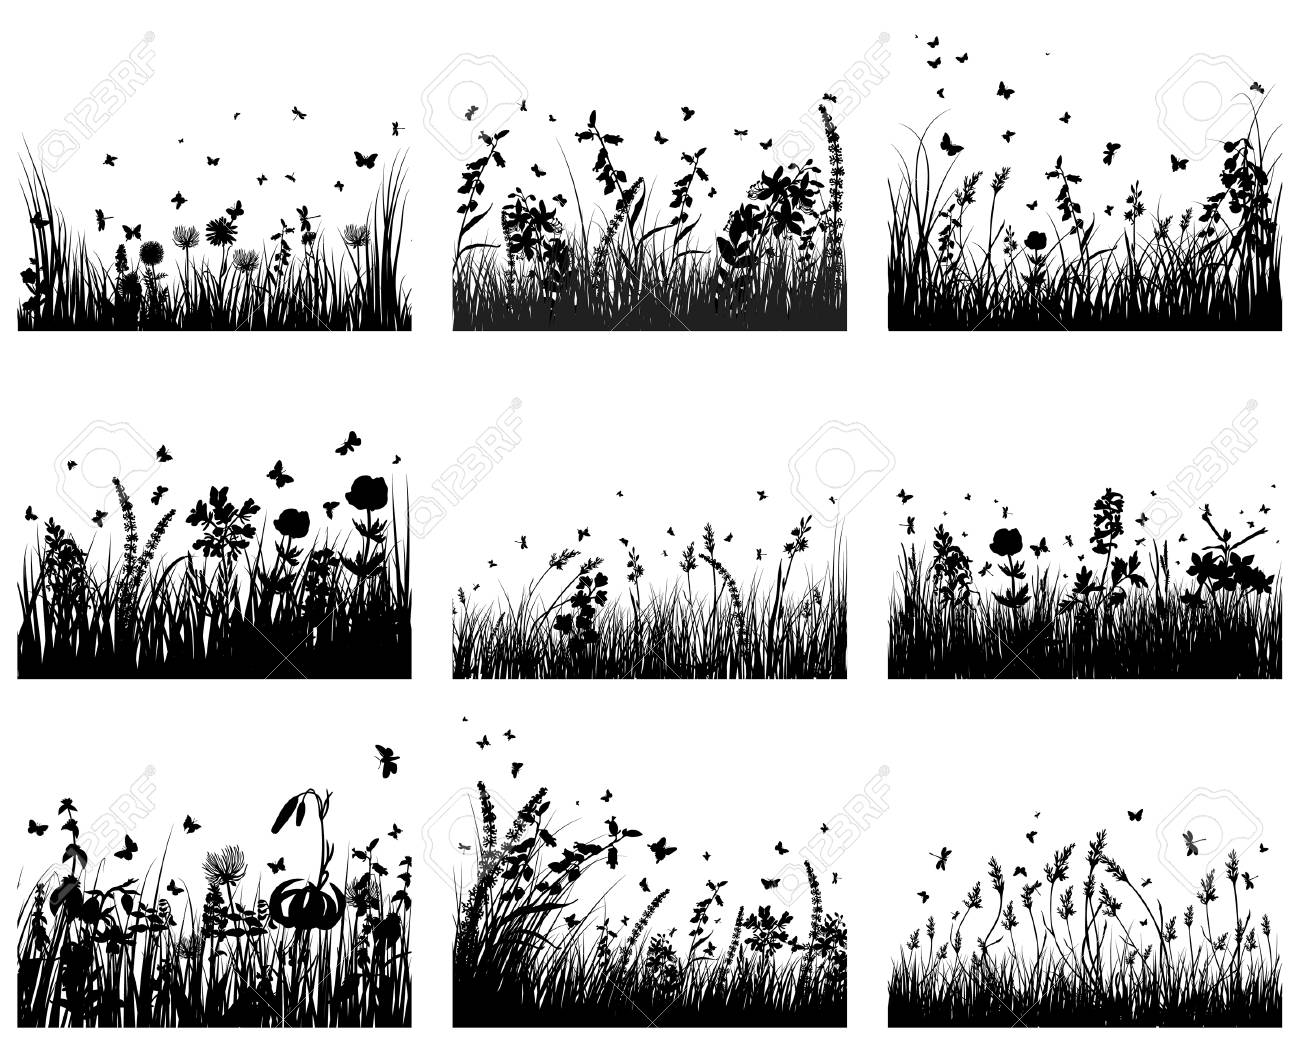 Vector grass silhouettes backgrounds set. All objects are separated. Stock Vector - 5837835